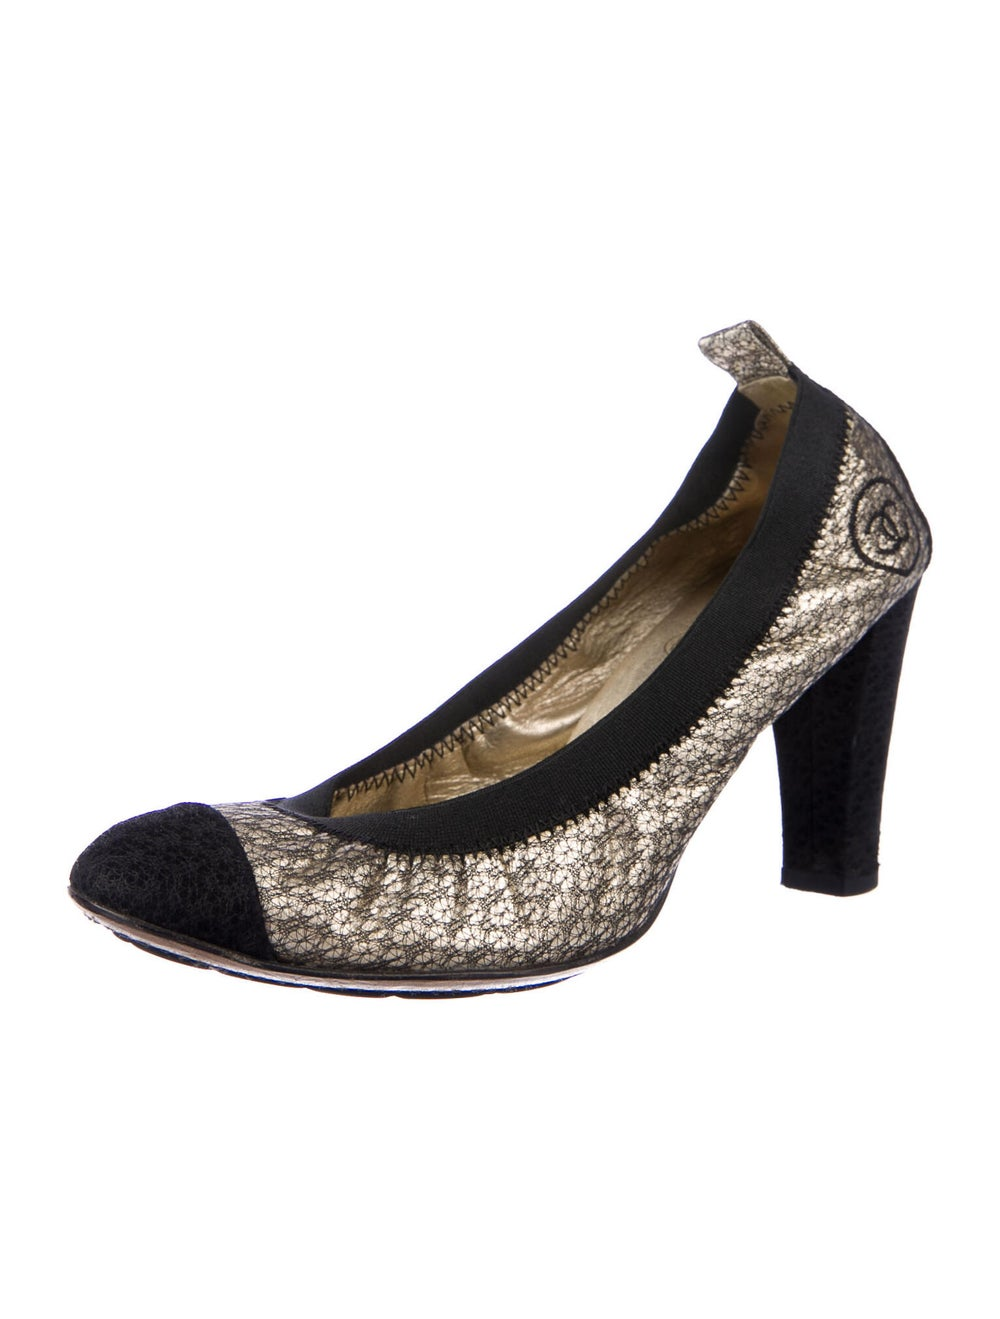 Chanel CC Lace Pumps Pumps Metallic - image 2